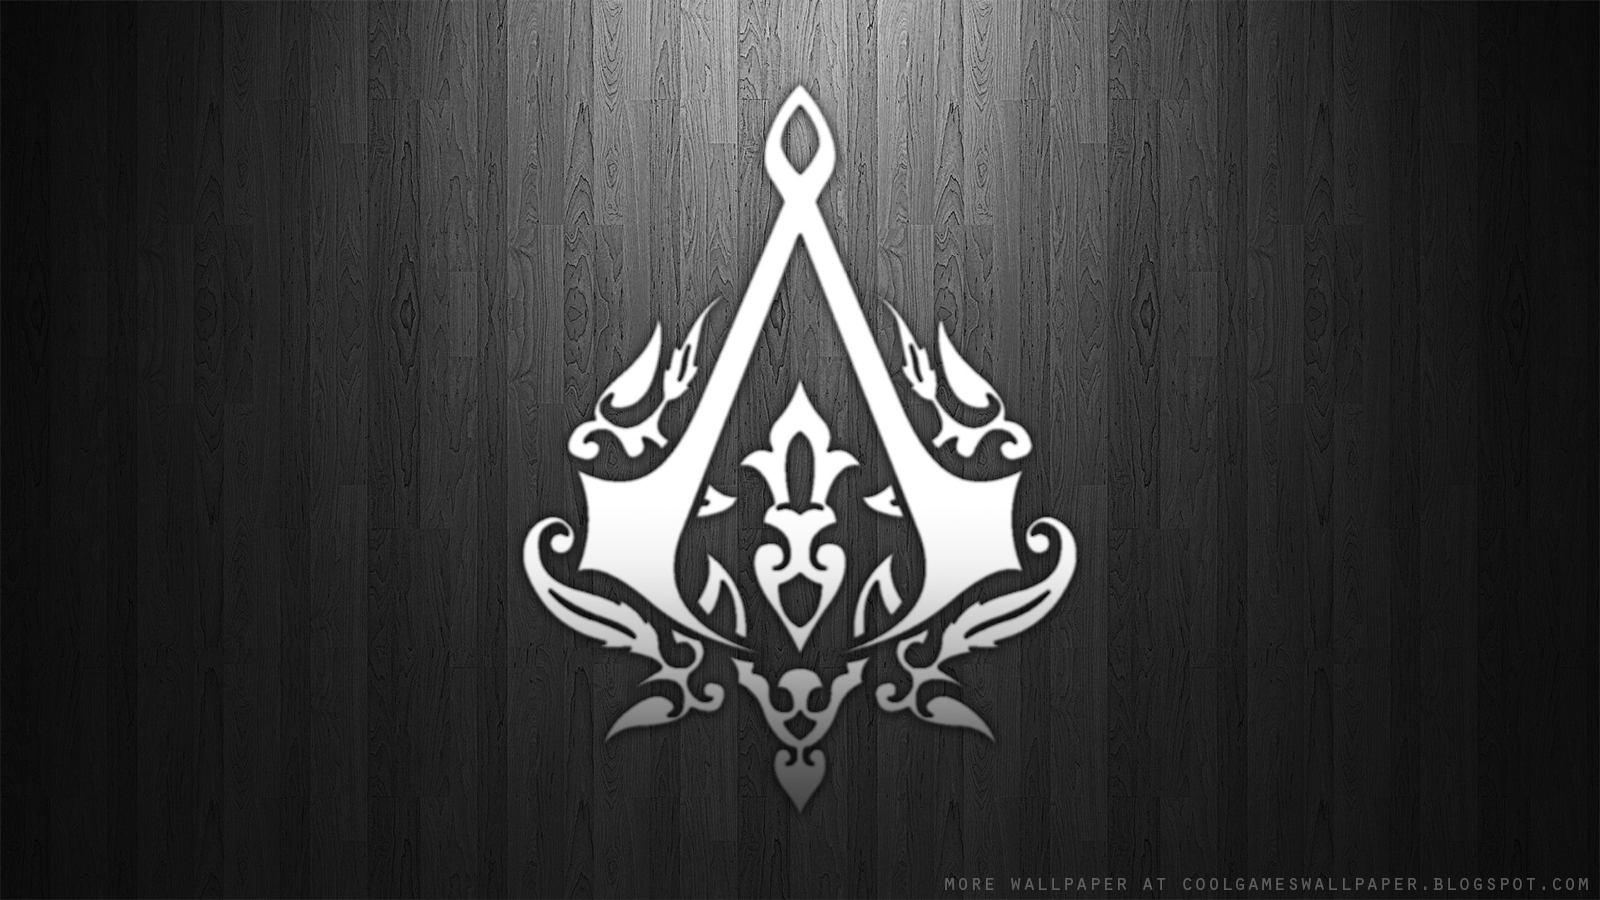 Assassins Creed 3 Logo Wallpaper Game Mania Club Wallpapers 1600x900